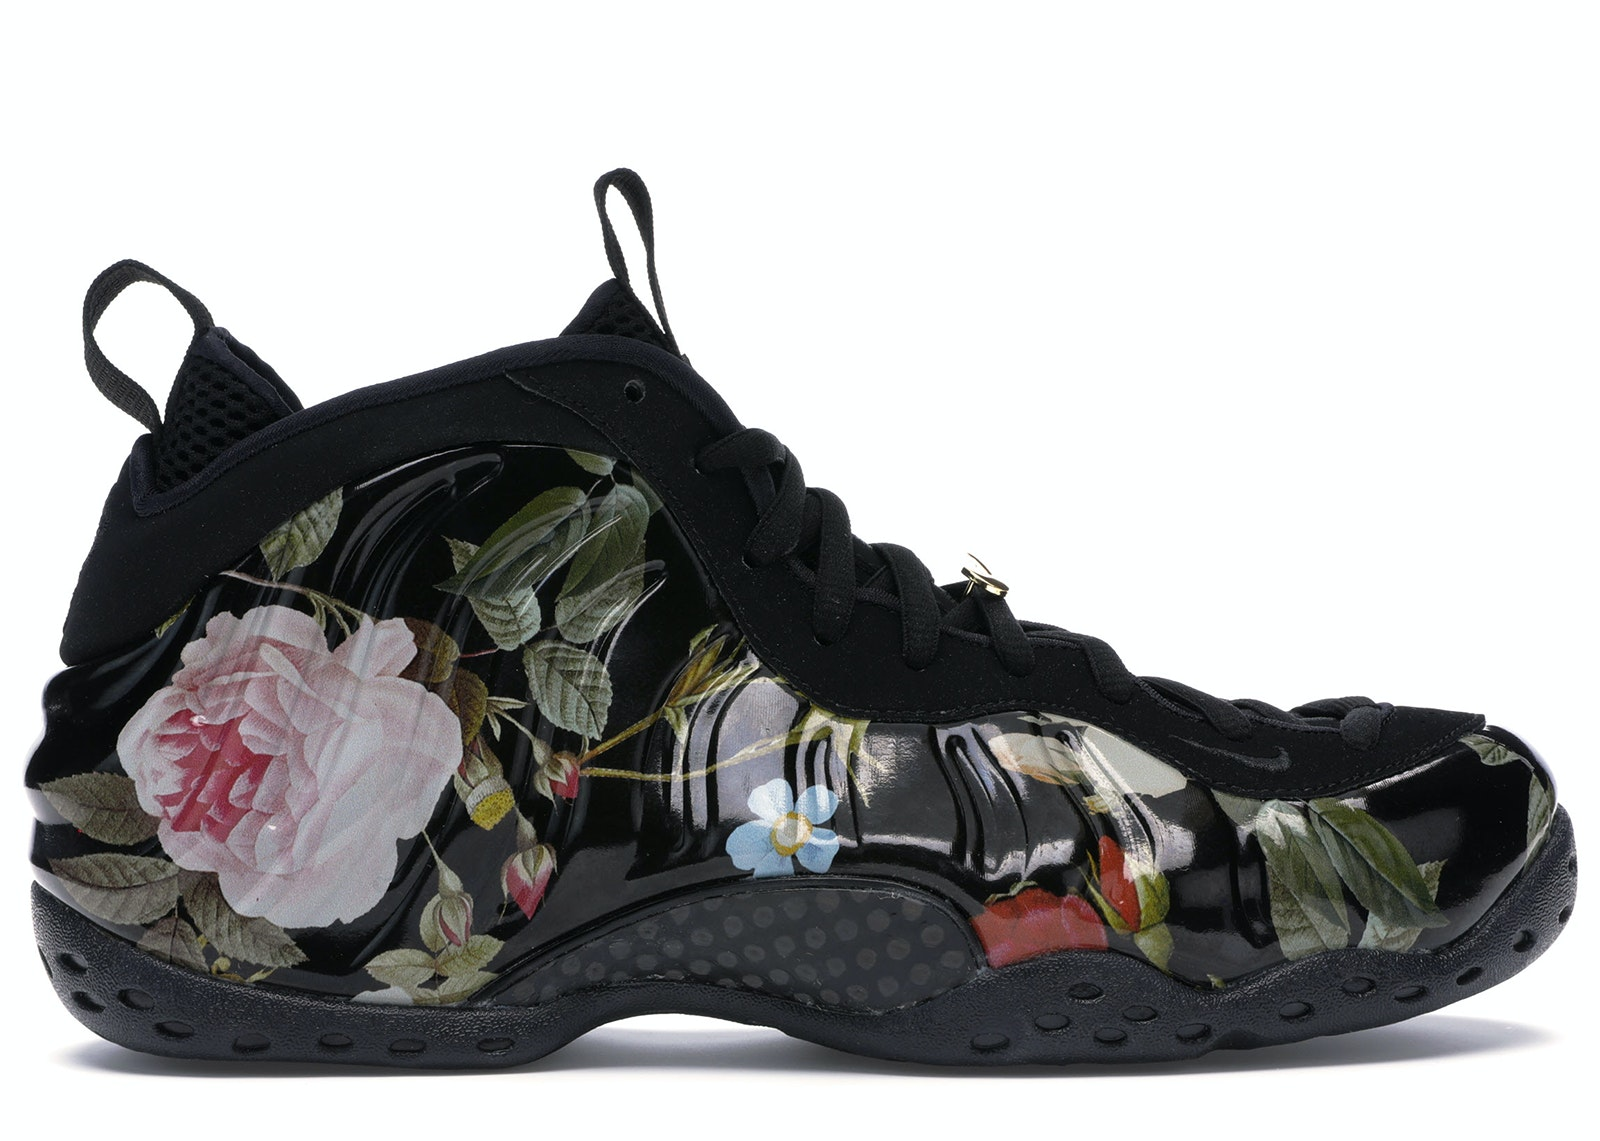 NIKE AIR FOAMPOSITE ONE BARELY GREEN? POSSIBLY ...